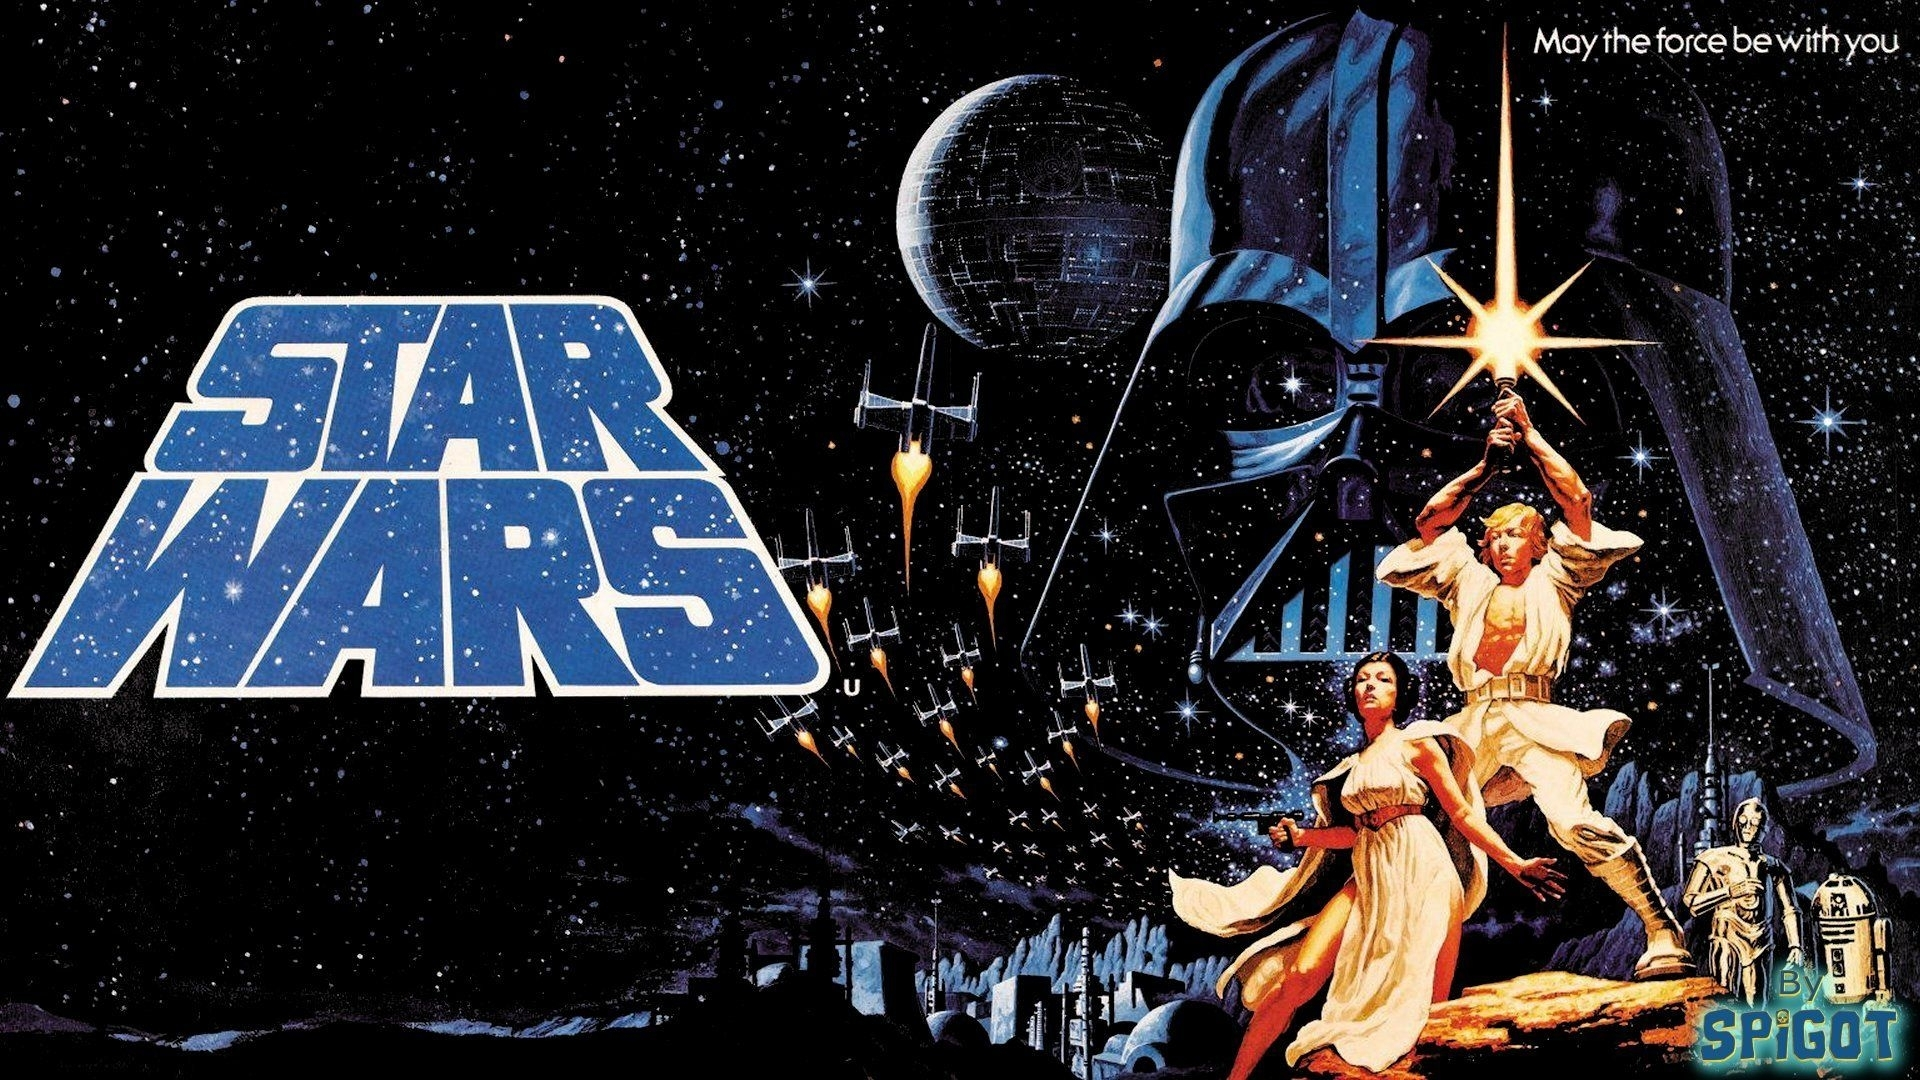 star wars hd wallpapers - wallpaper.wiki